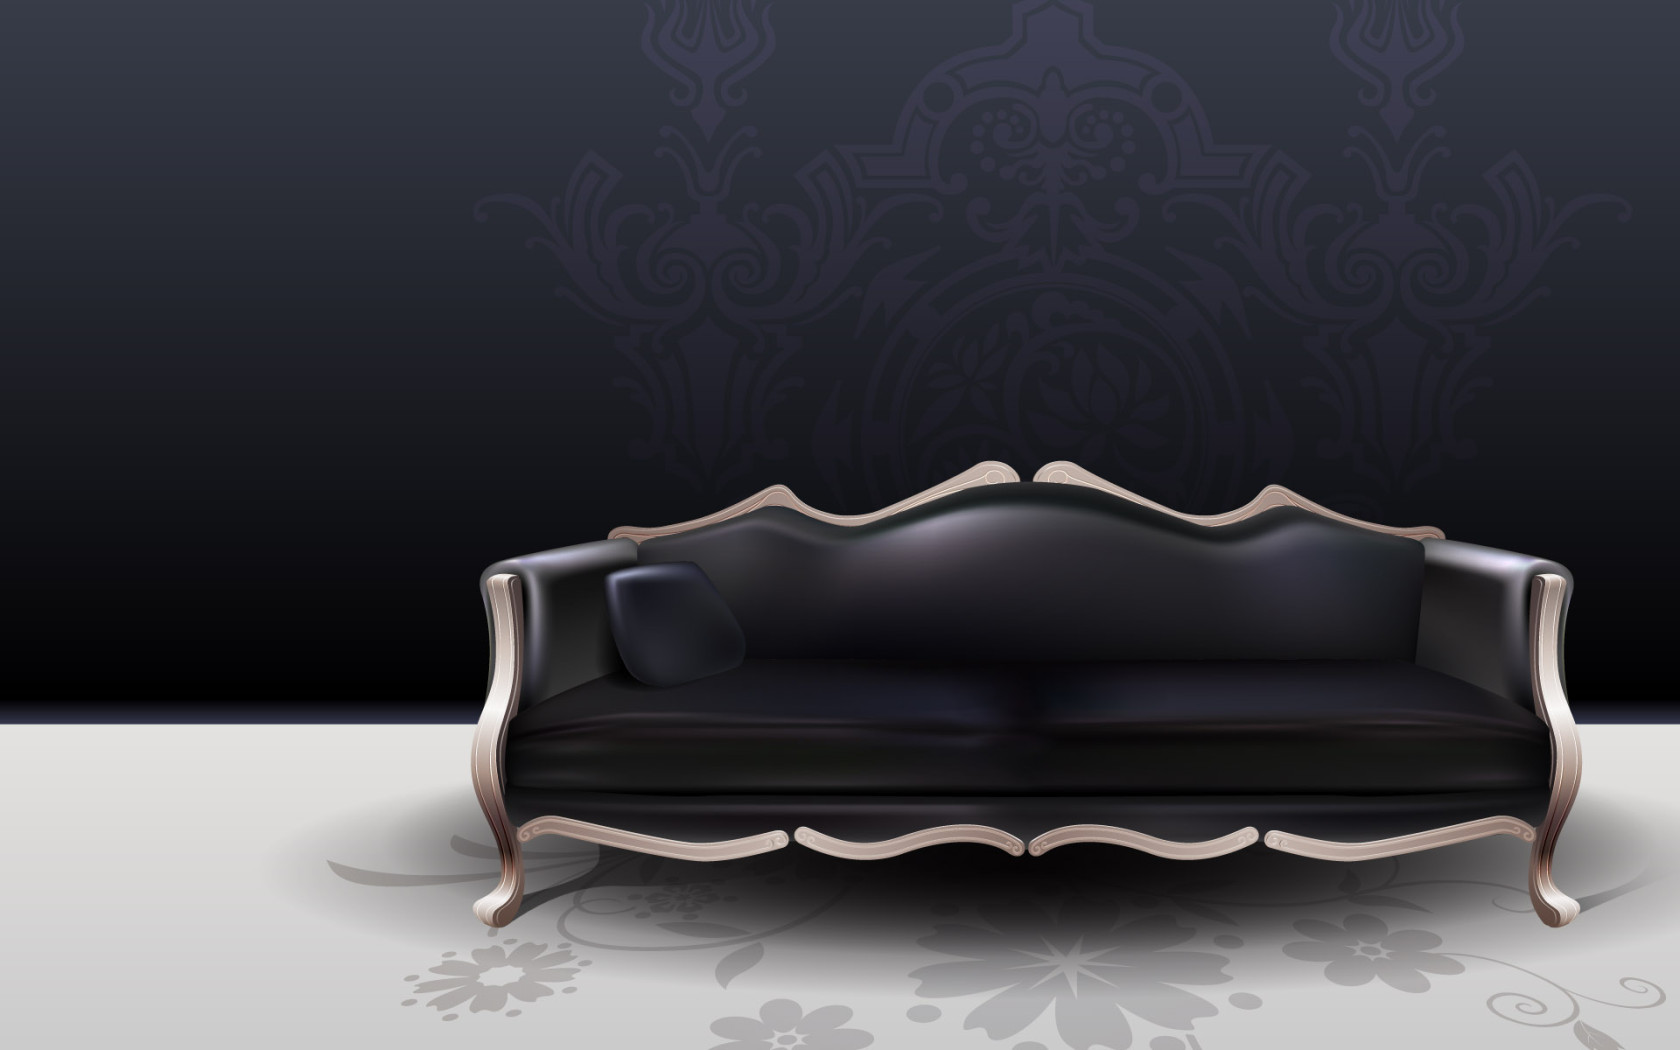 Cool Sofa Wallpaper